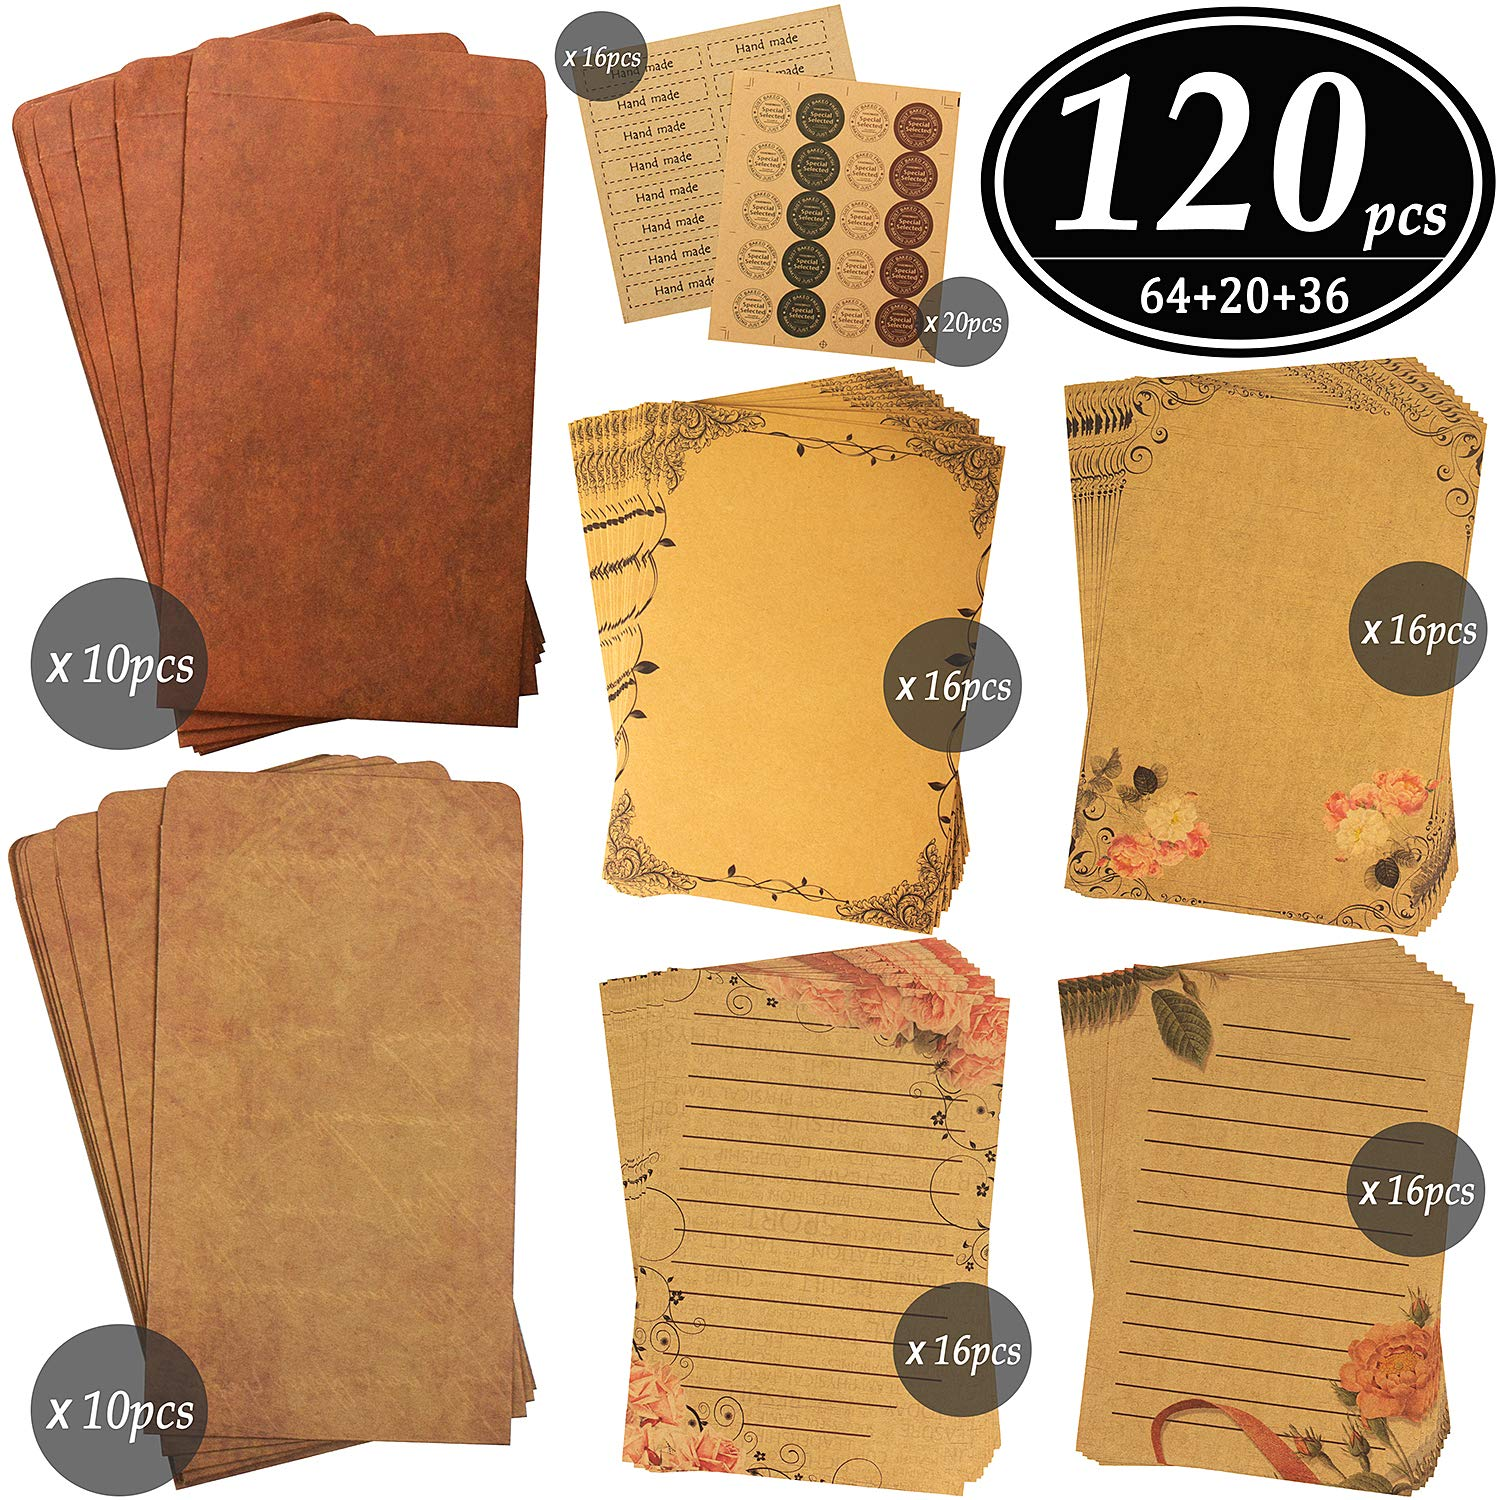 CenterZ Vintage Stationary Paper + Kraft Envelopes Set with Seal Stickers (64pcs 4 Patterns 8.3 x 5.7 Writing Stationery Papers, 20pcs 2 Colors 7.9 x 4.7 Letter Envelope, 36pcs 2 Styles Rustic Seals) by CenterZ